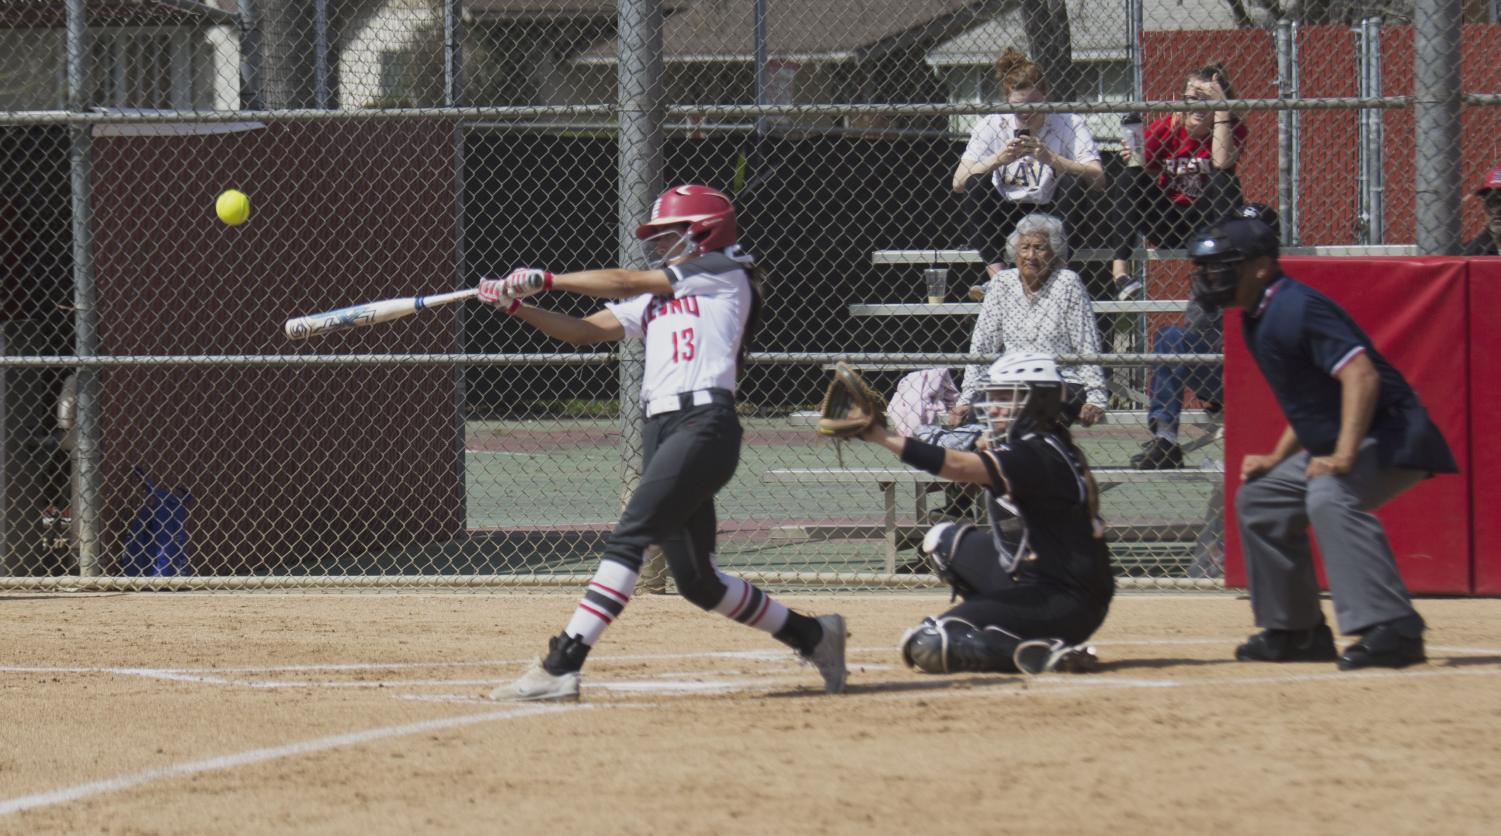 Rams' sophomore outfielder Savannah Pena connects with a pitch that would end up deep over the left field fence for a home run during the Rams' blowout win over Taft College on March 19, 2019.